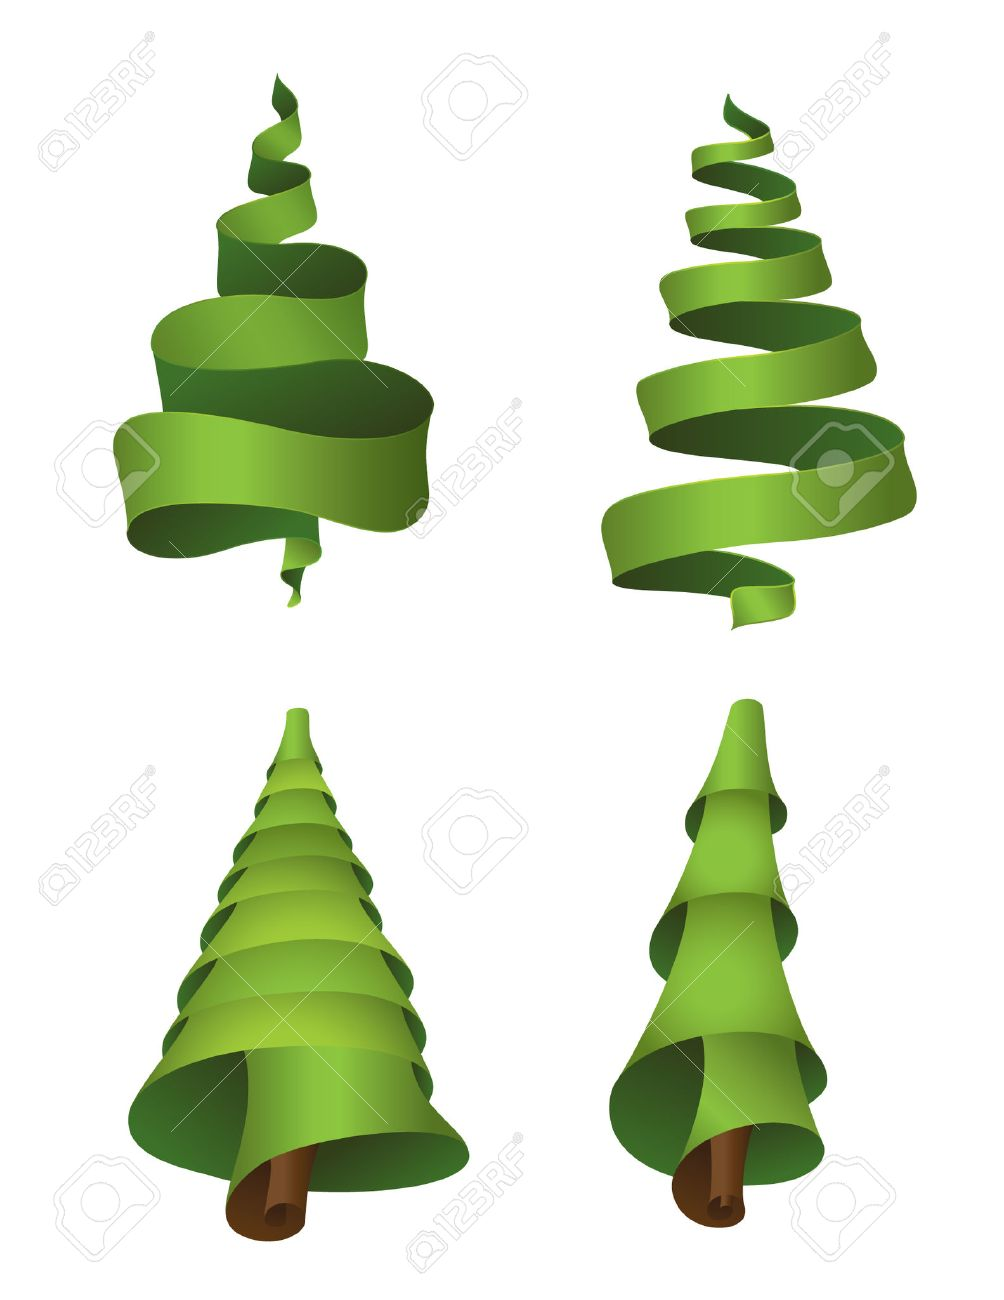 Set of 4 christmas trees made from ribbons Stock Vector - 5194847